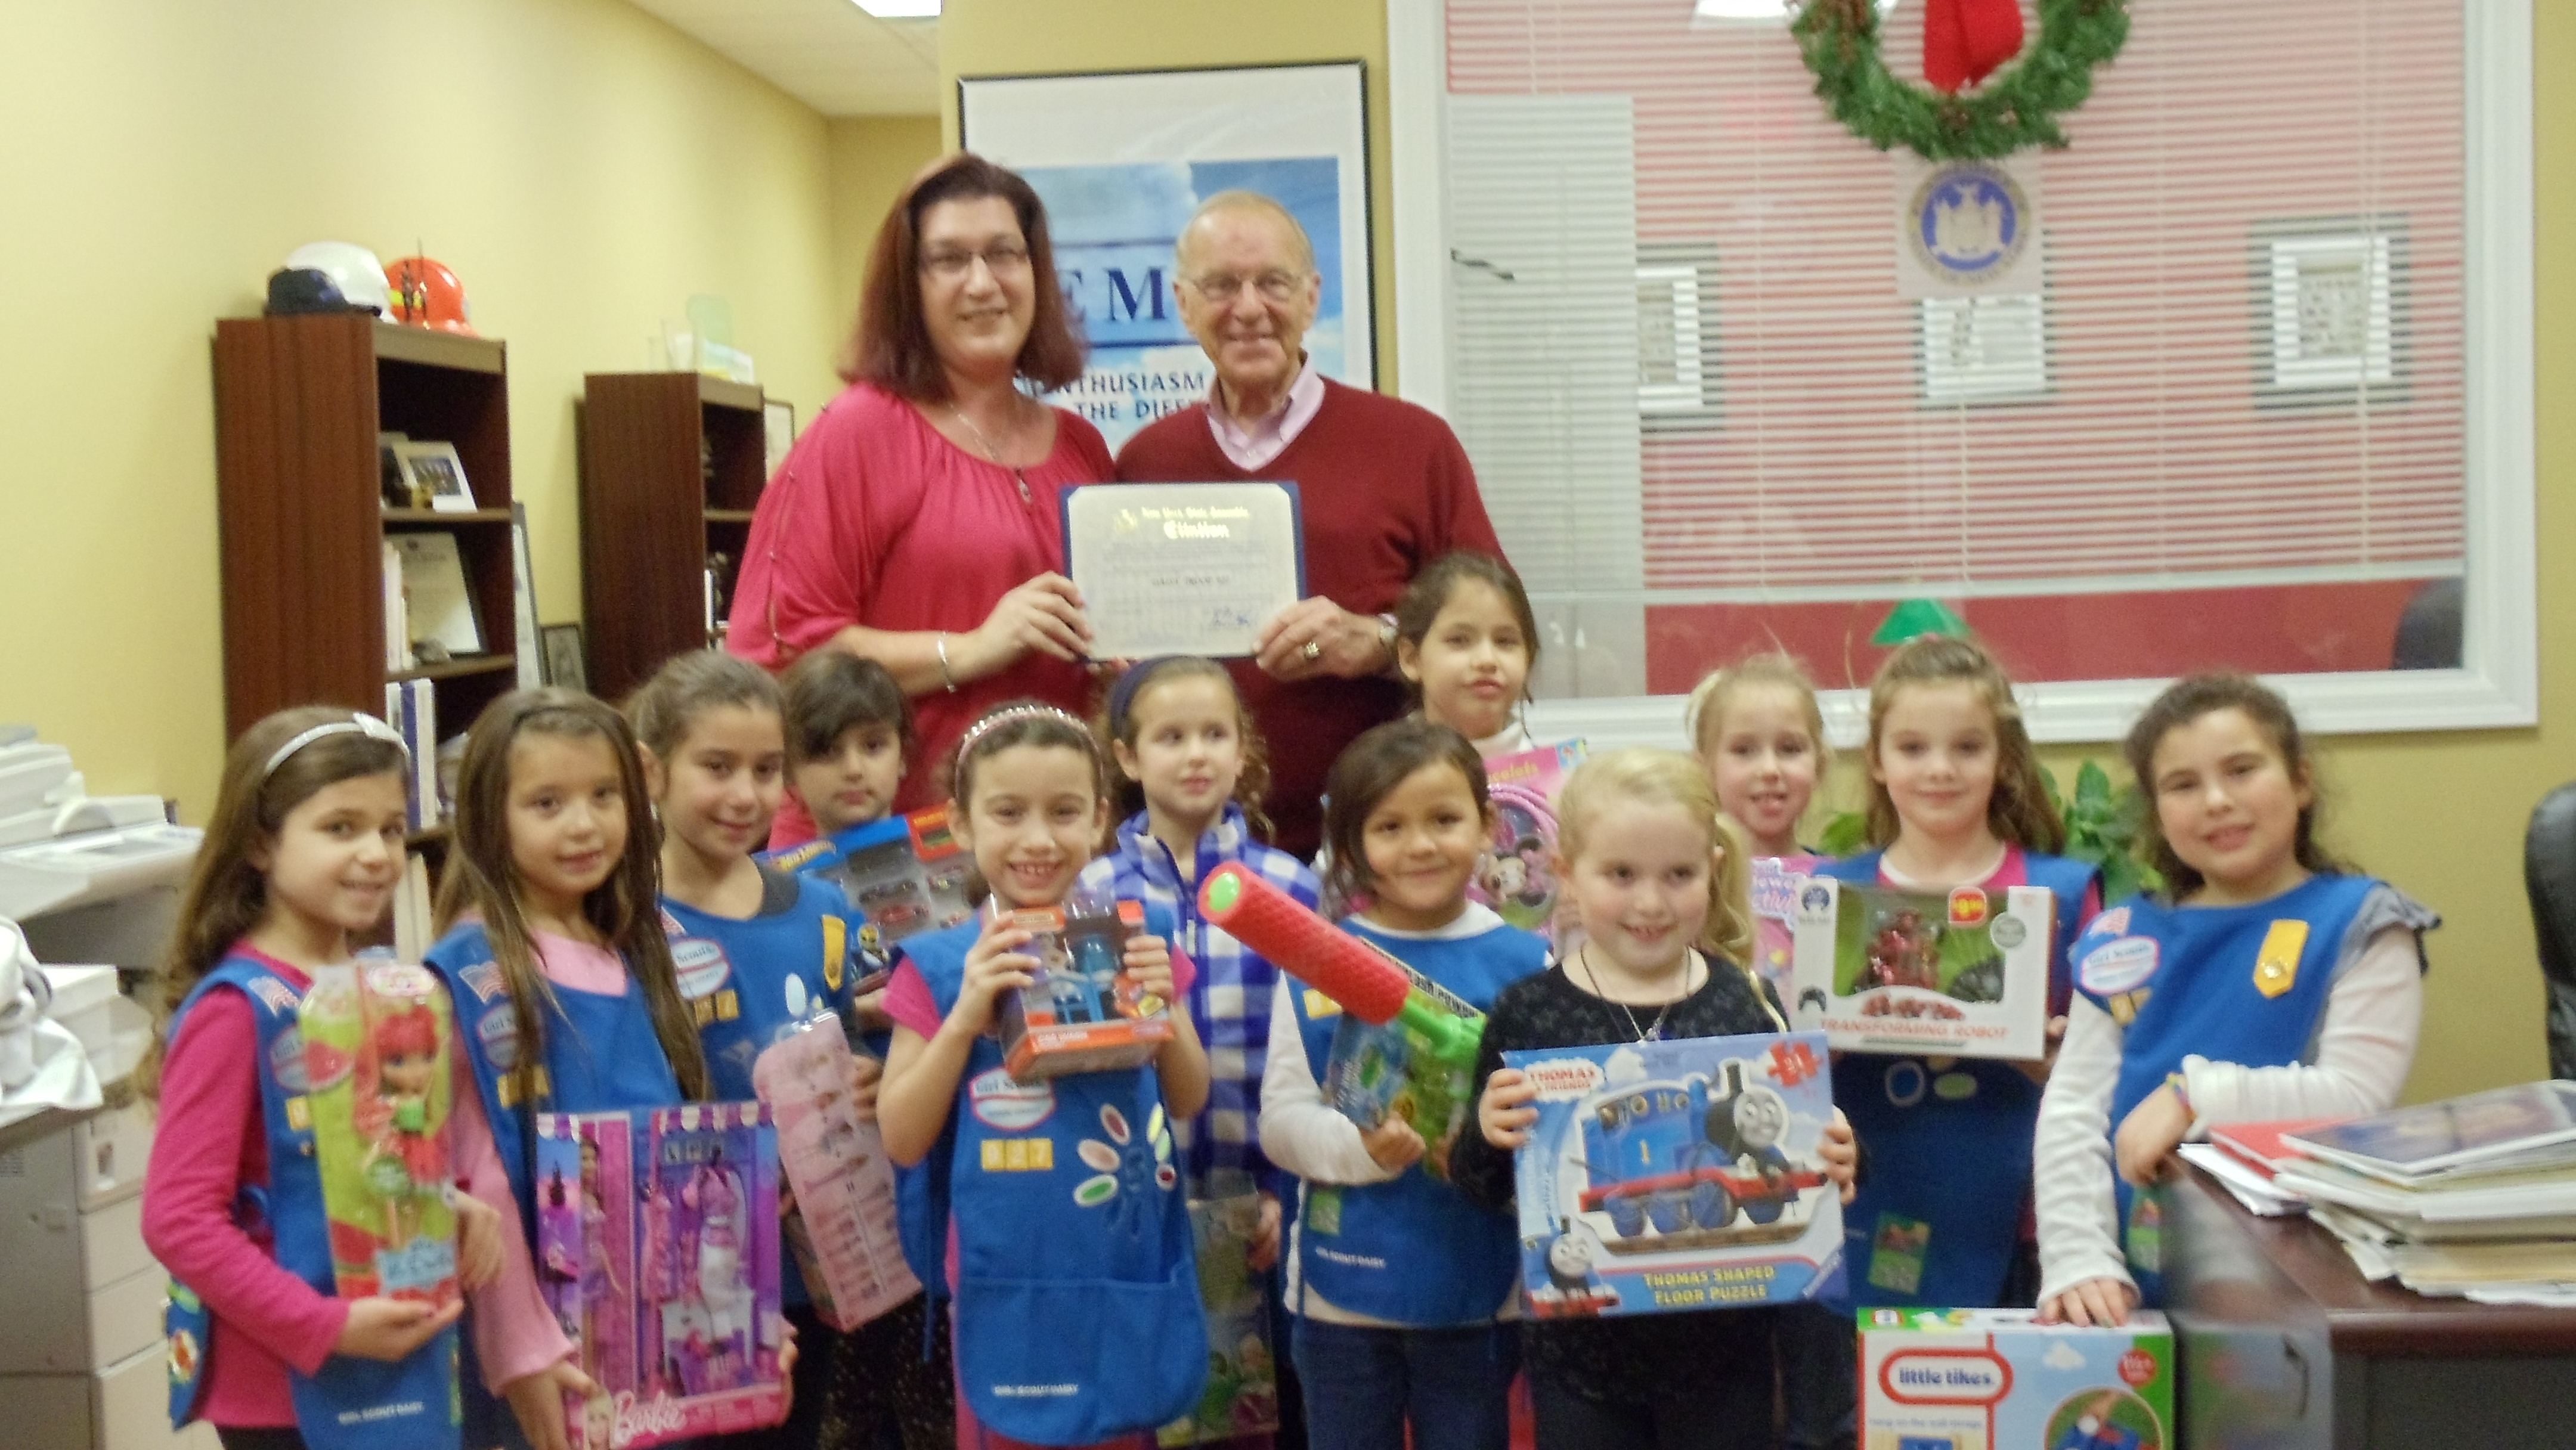 Assemblyman Dave McDonough presents an Assembly Citation to Daisy Troop 927, led by Maria Kotanidis, for their support of Toys for Tots.